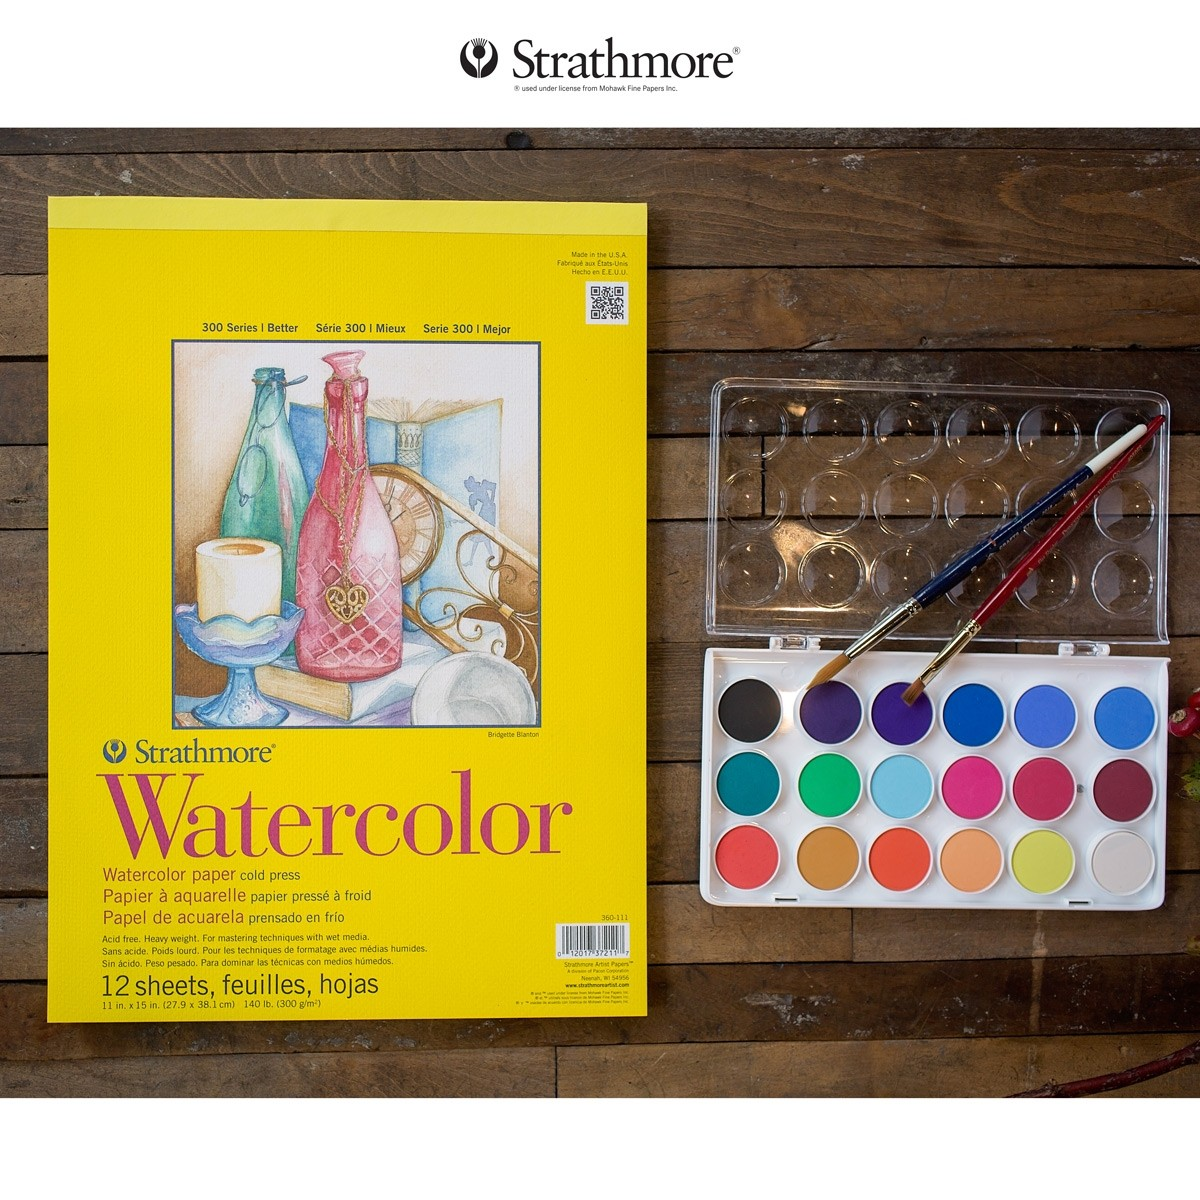 Strathmore 300 Series 140lb. Watercolor Paper Pads